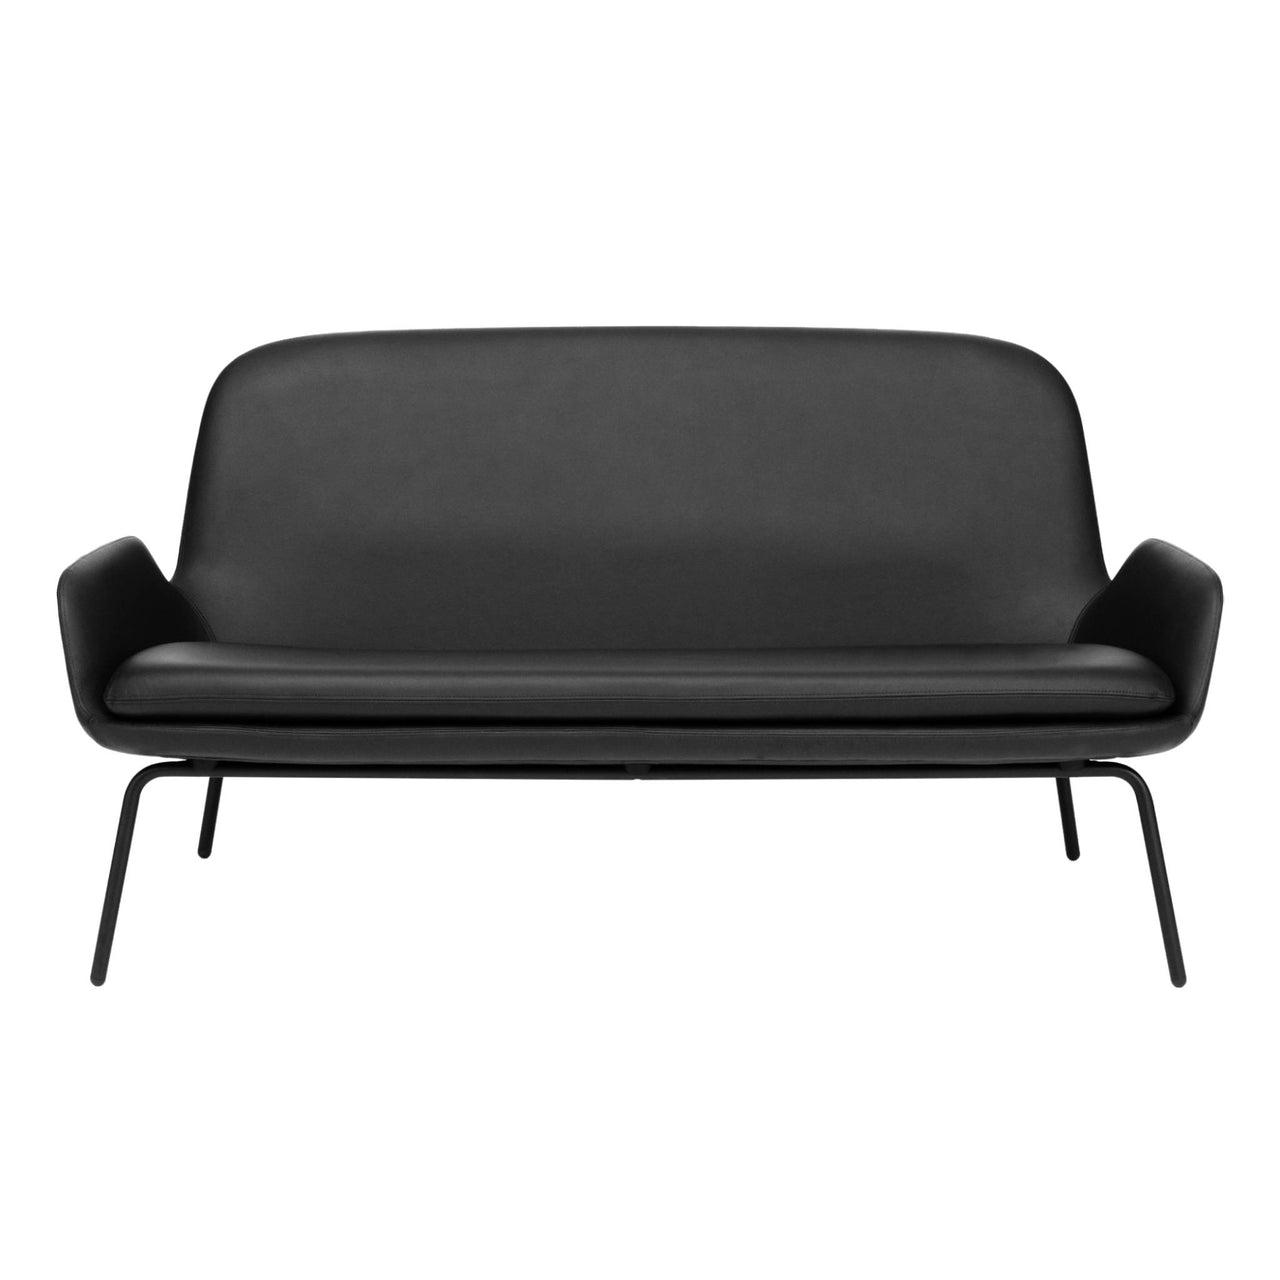 Era Sofa: Steel or Chrome Base